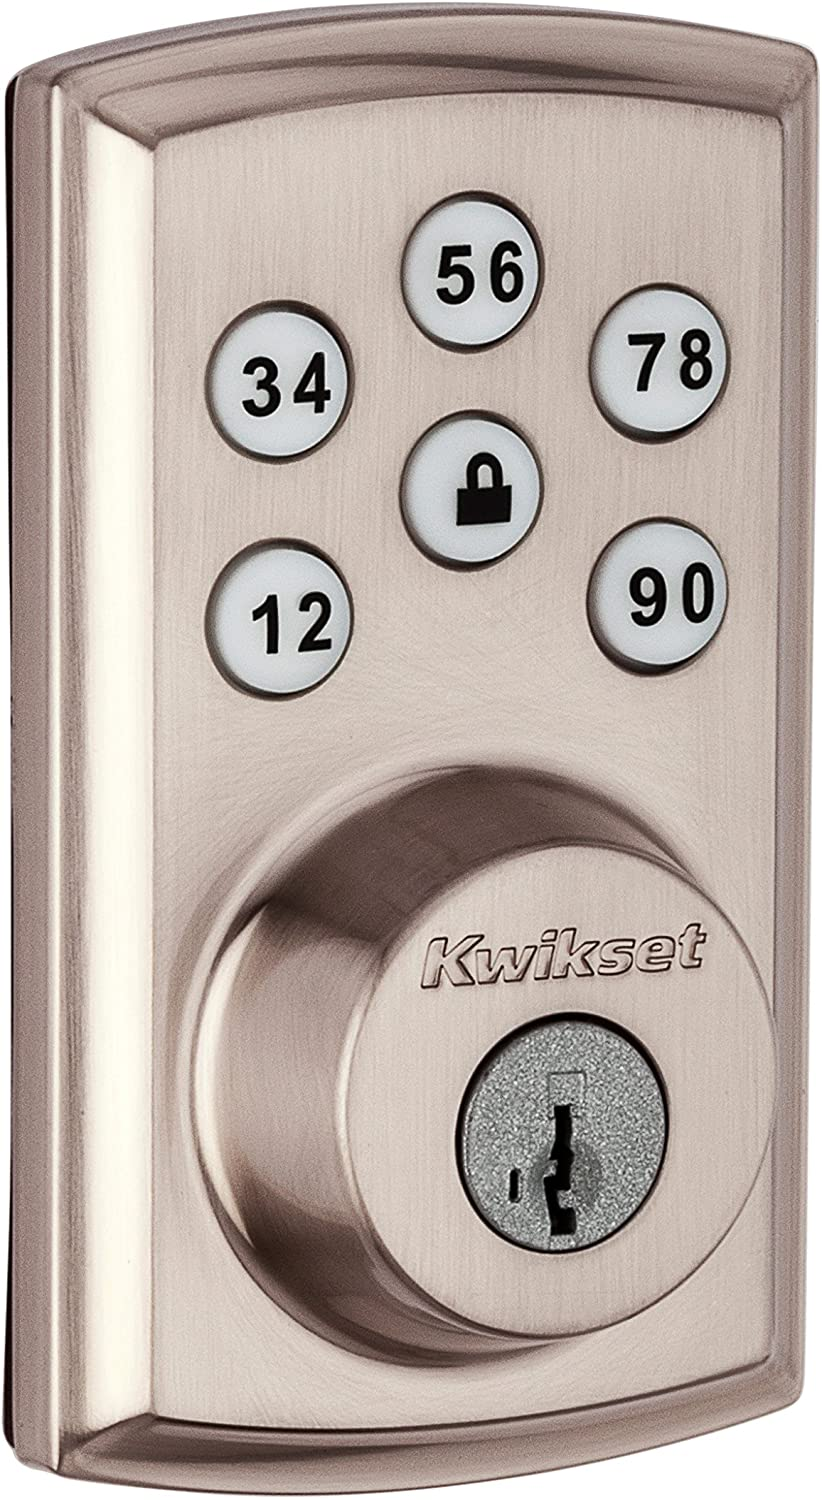 Kwikset SmartCode 888 Touchpad Electronic Deadbolt with Z-Wave